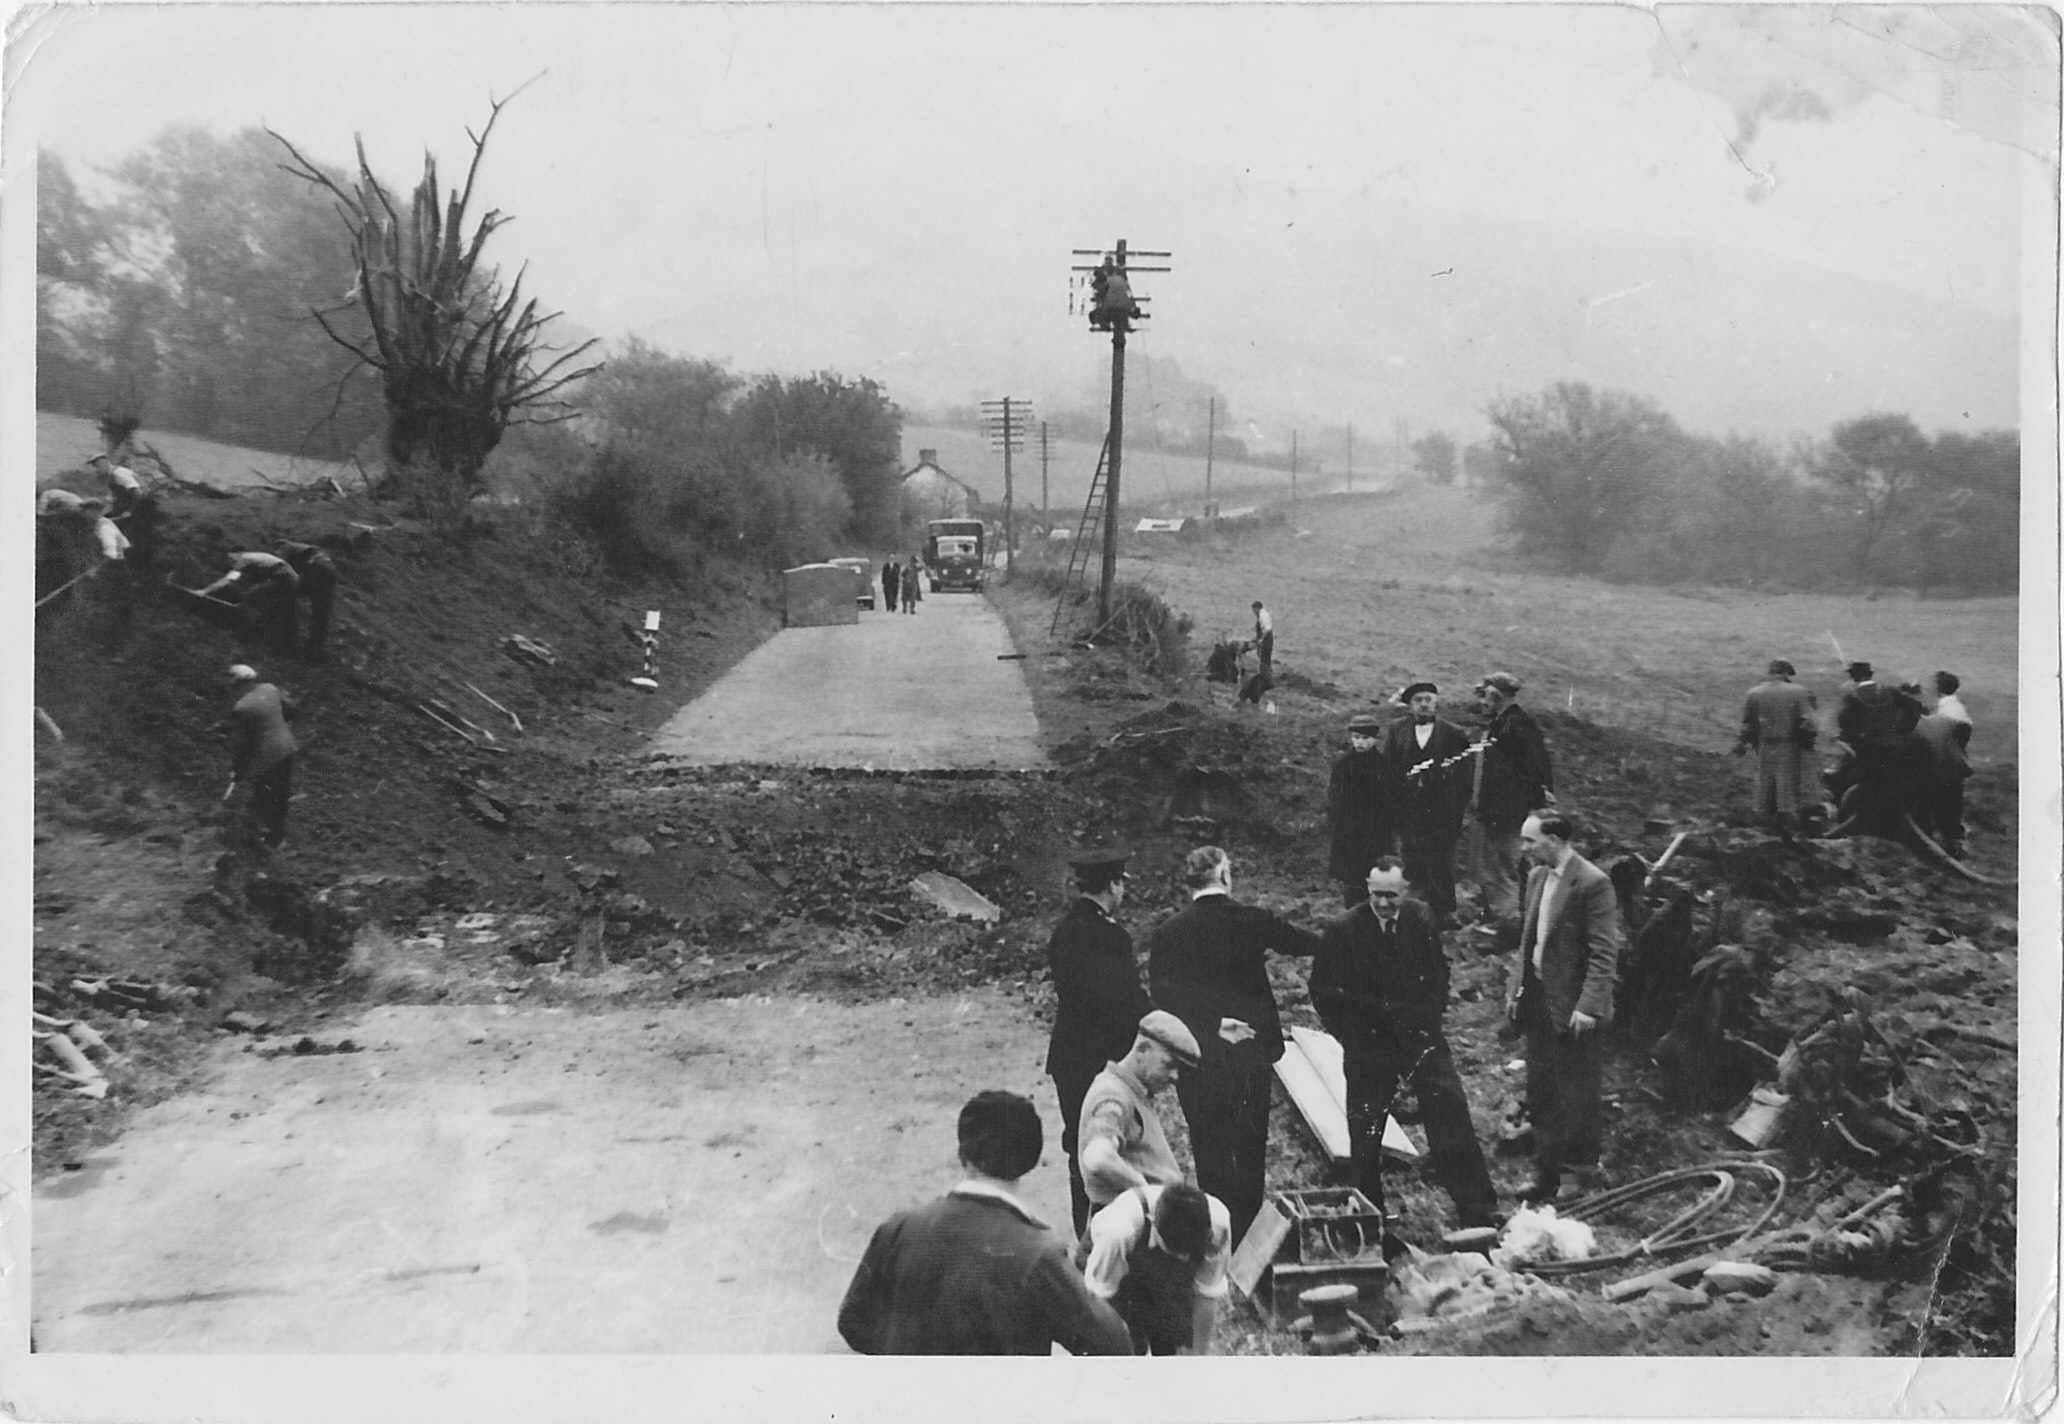 A40 Explosion road damage 1957